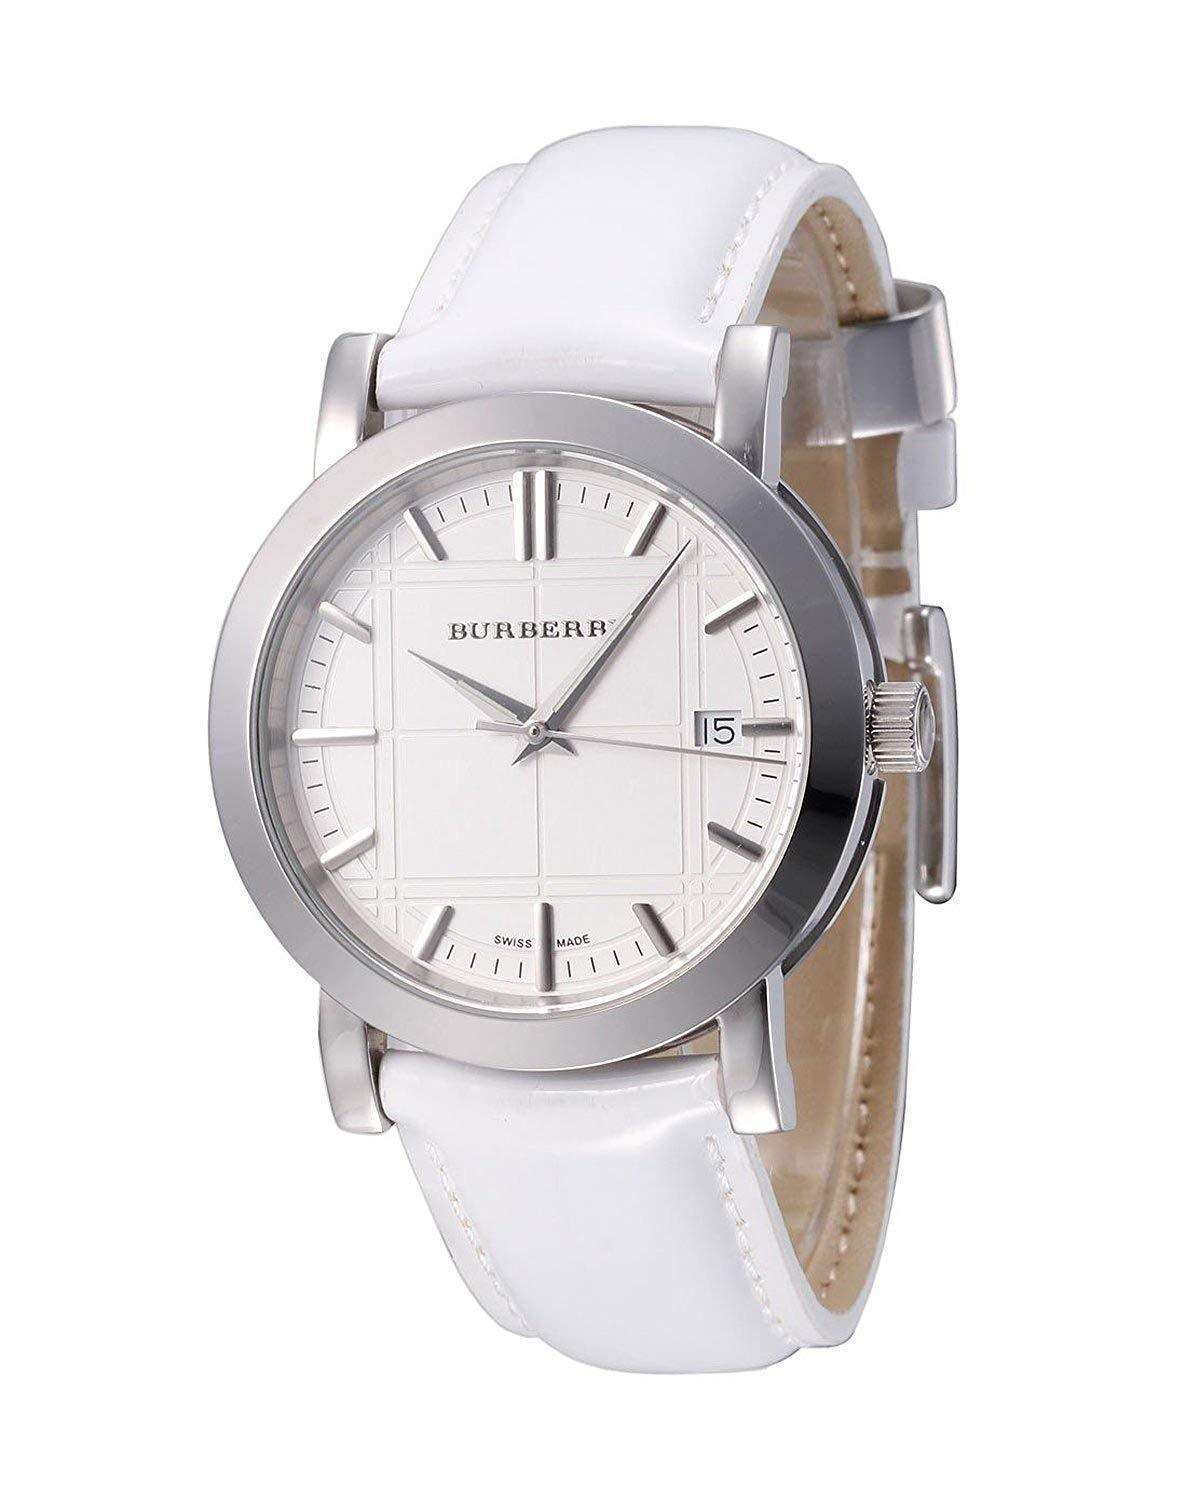 Primary image for Burberry BU1380 Silver Tone Swiss Watch 32mm